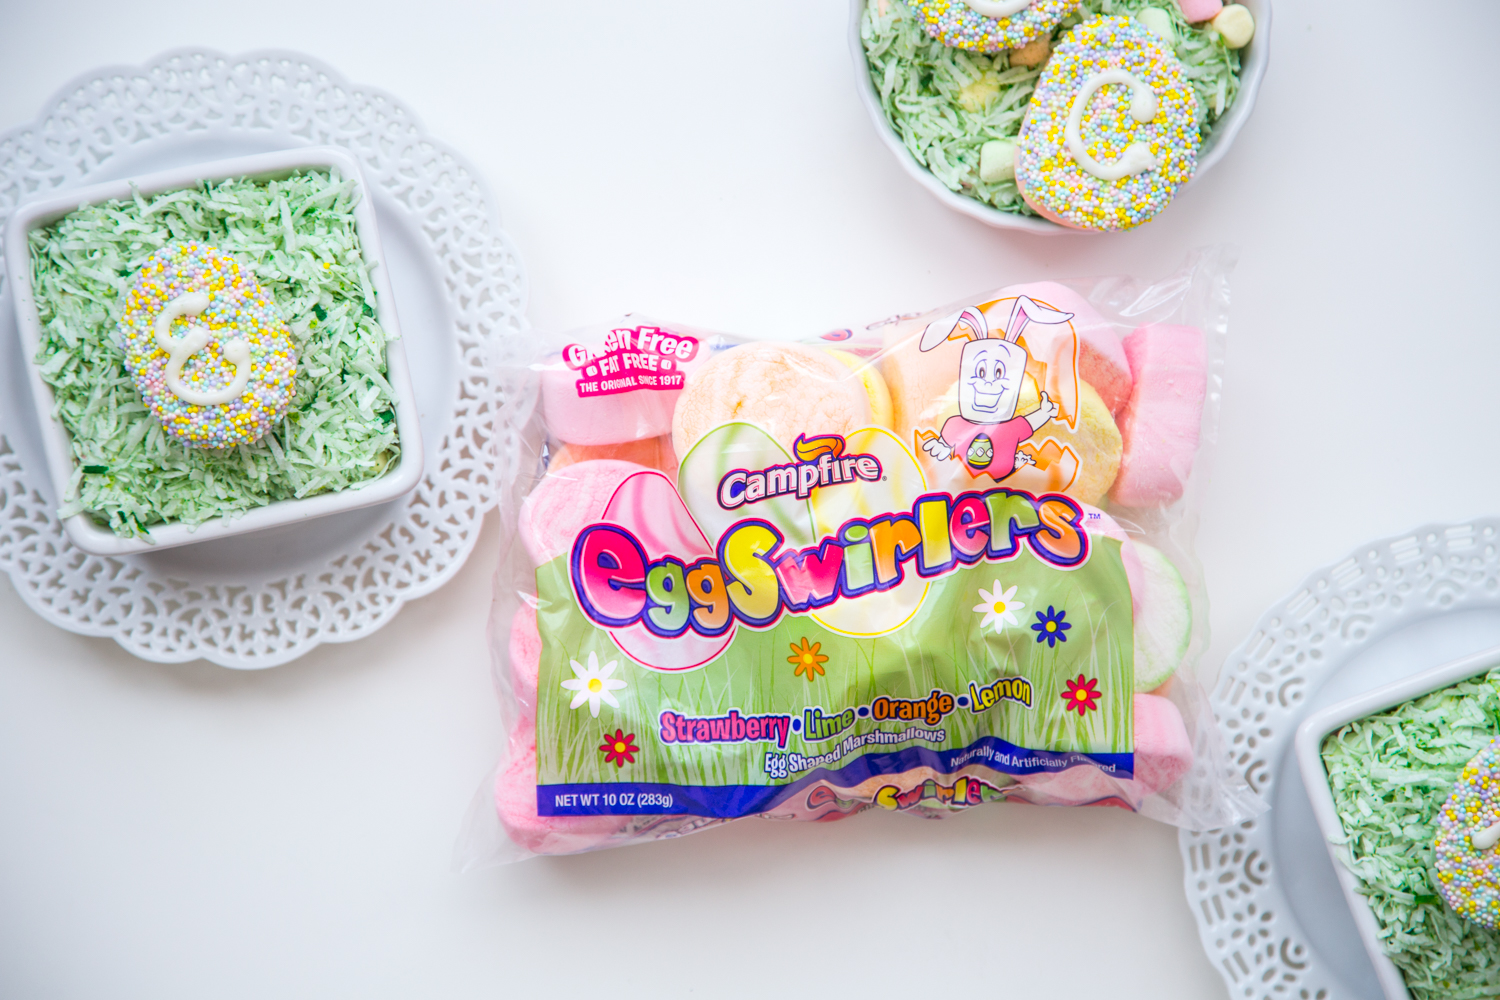 Monogram Marshmallow Easter Eggs with Campfire® Eggswirlers